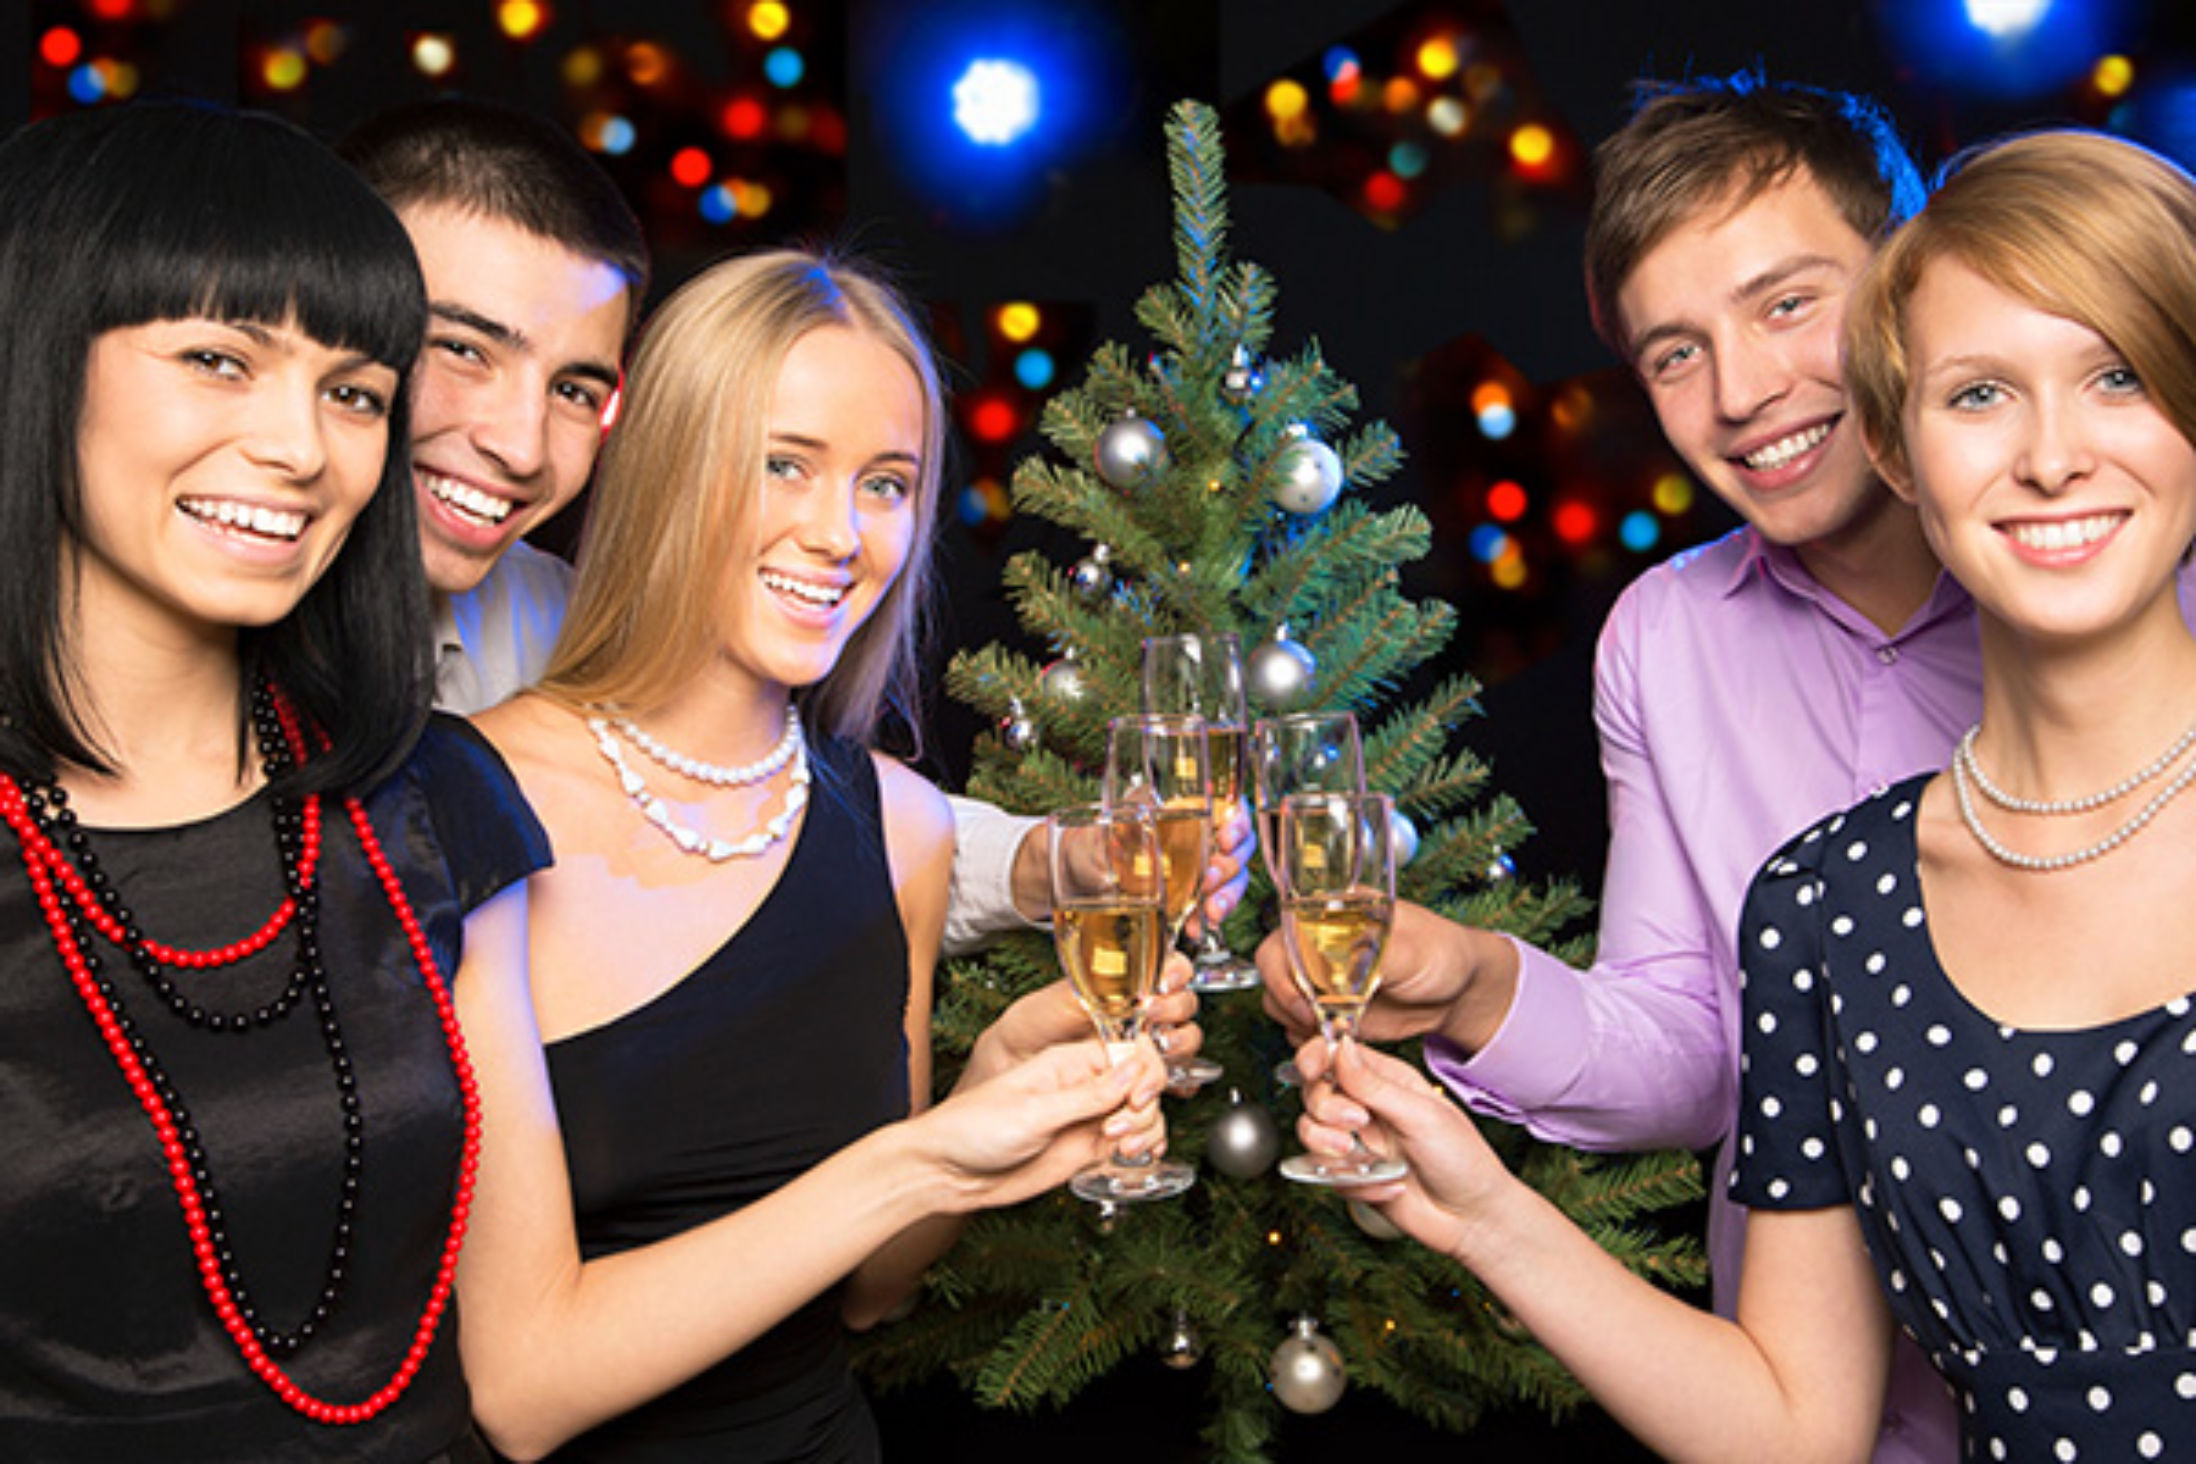 Ordinary Christmas Party Ideas Manchester Part - 12: Manchester Christmas Party Ideas